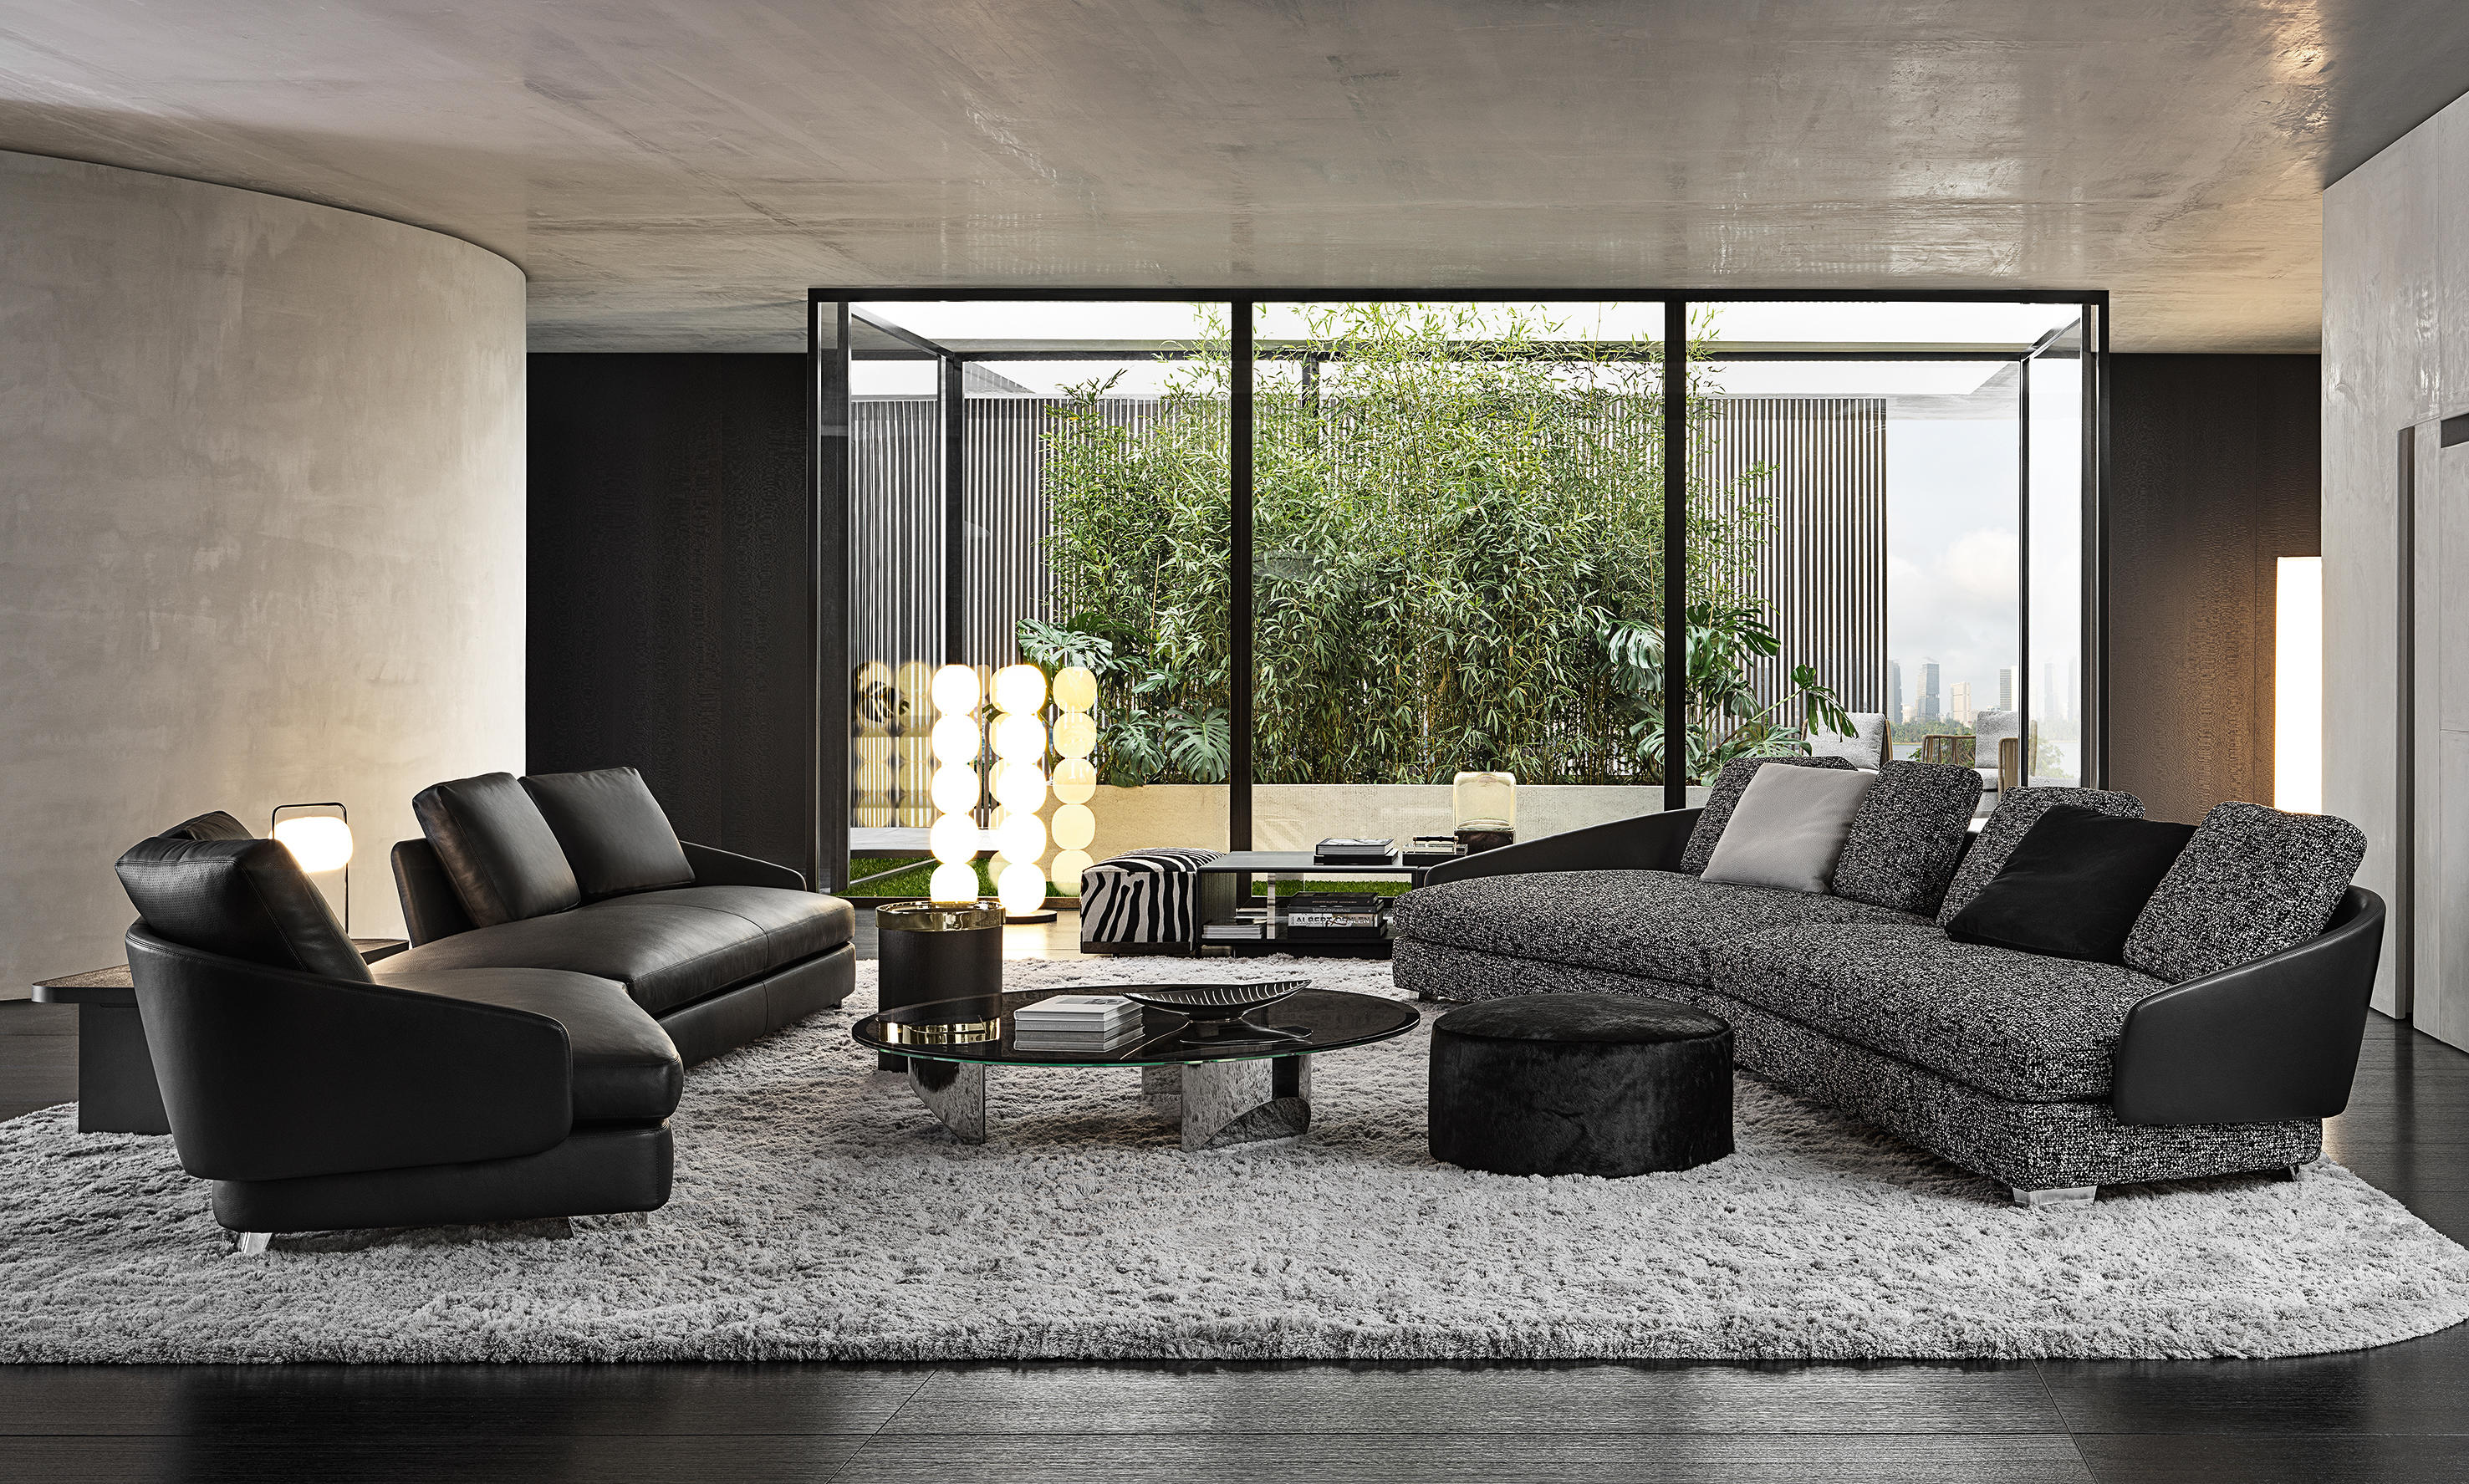 Lawson Seating Collection by Rodolfo Dordoni for Minotti